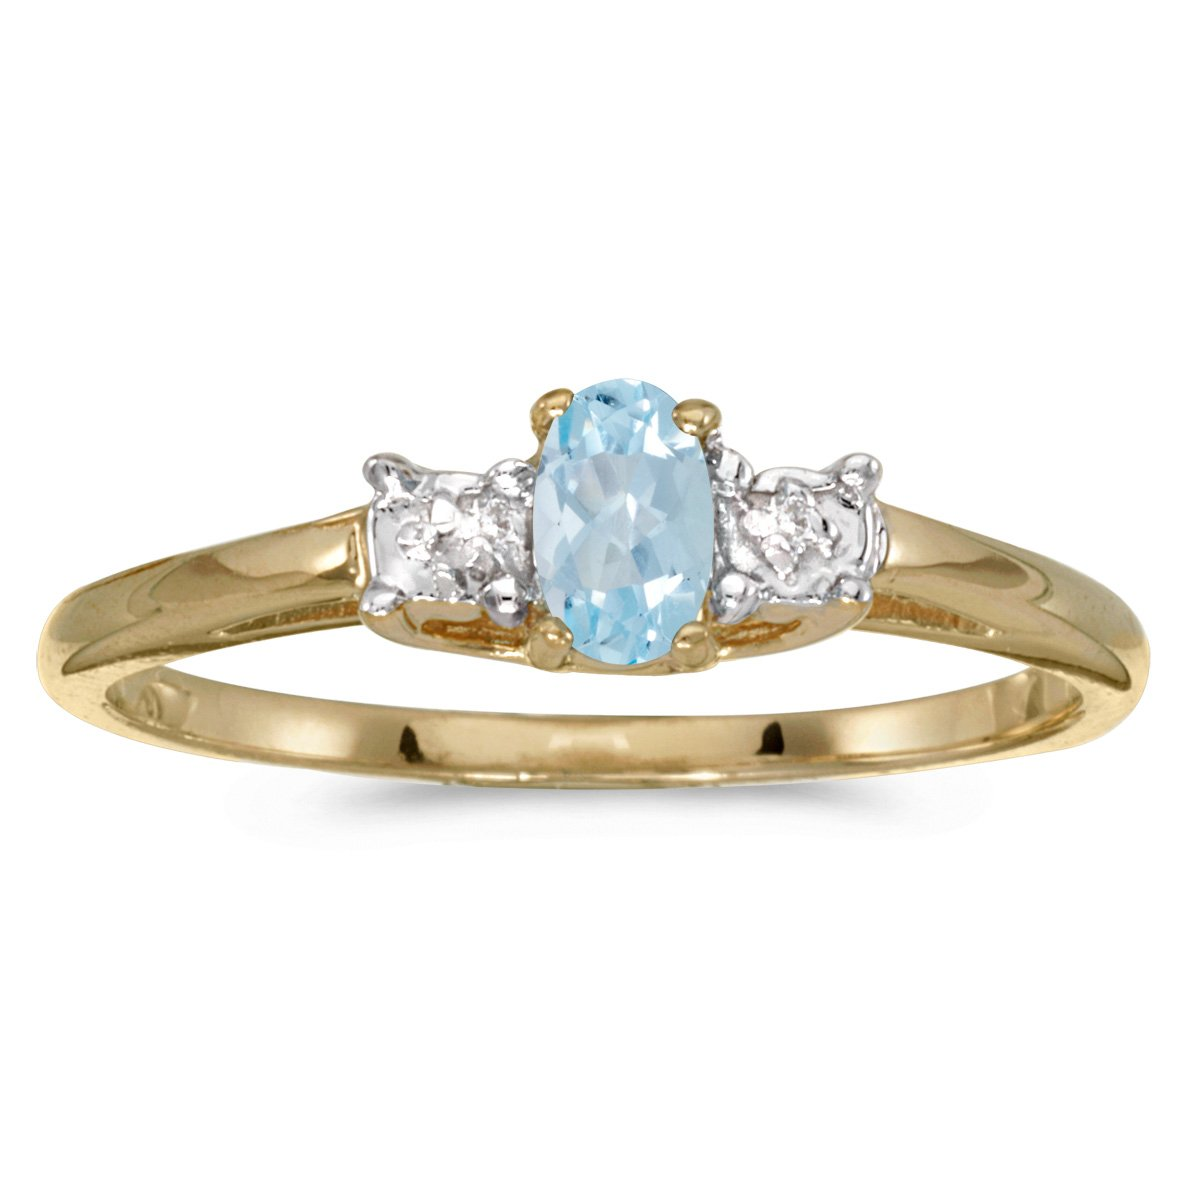 0.14 Carat (ctw) 10k Yellow Gold Oval Aquamarine and Diamond 3 Three Stone Engagement Classic Engagement Promise Ring (5 x 3 MM) - Size 10